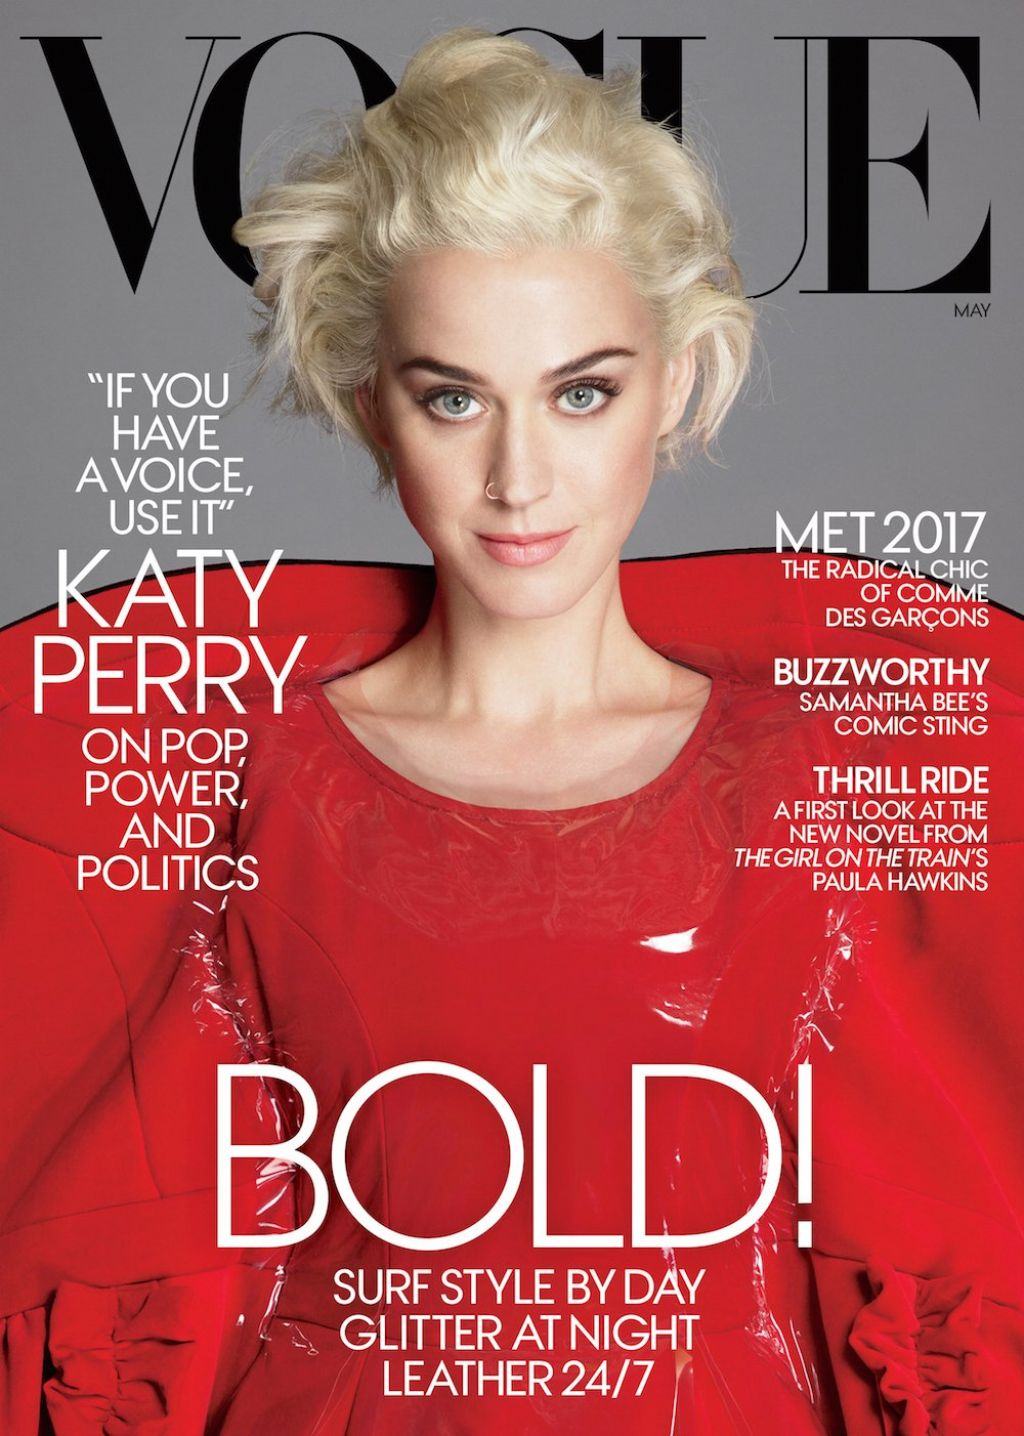 Vogue Magazine Subscription: Katy Perry -Vogue Magazine US May 2017 Cover And Photos